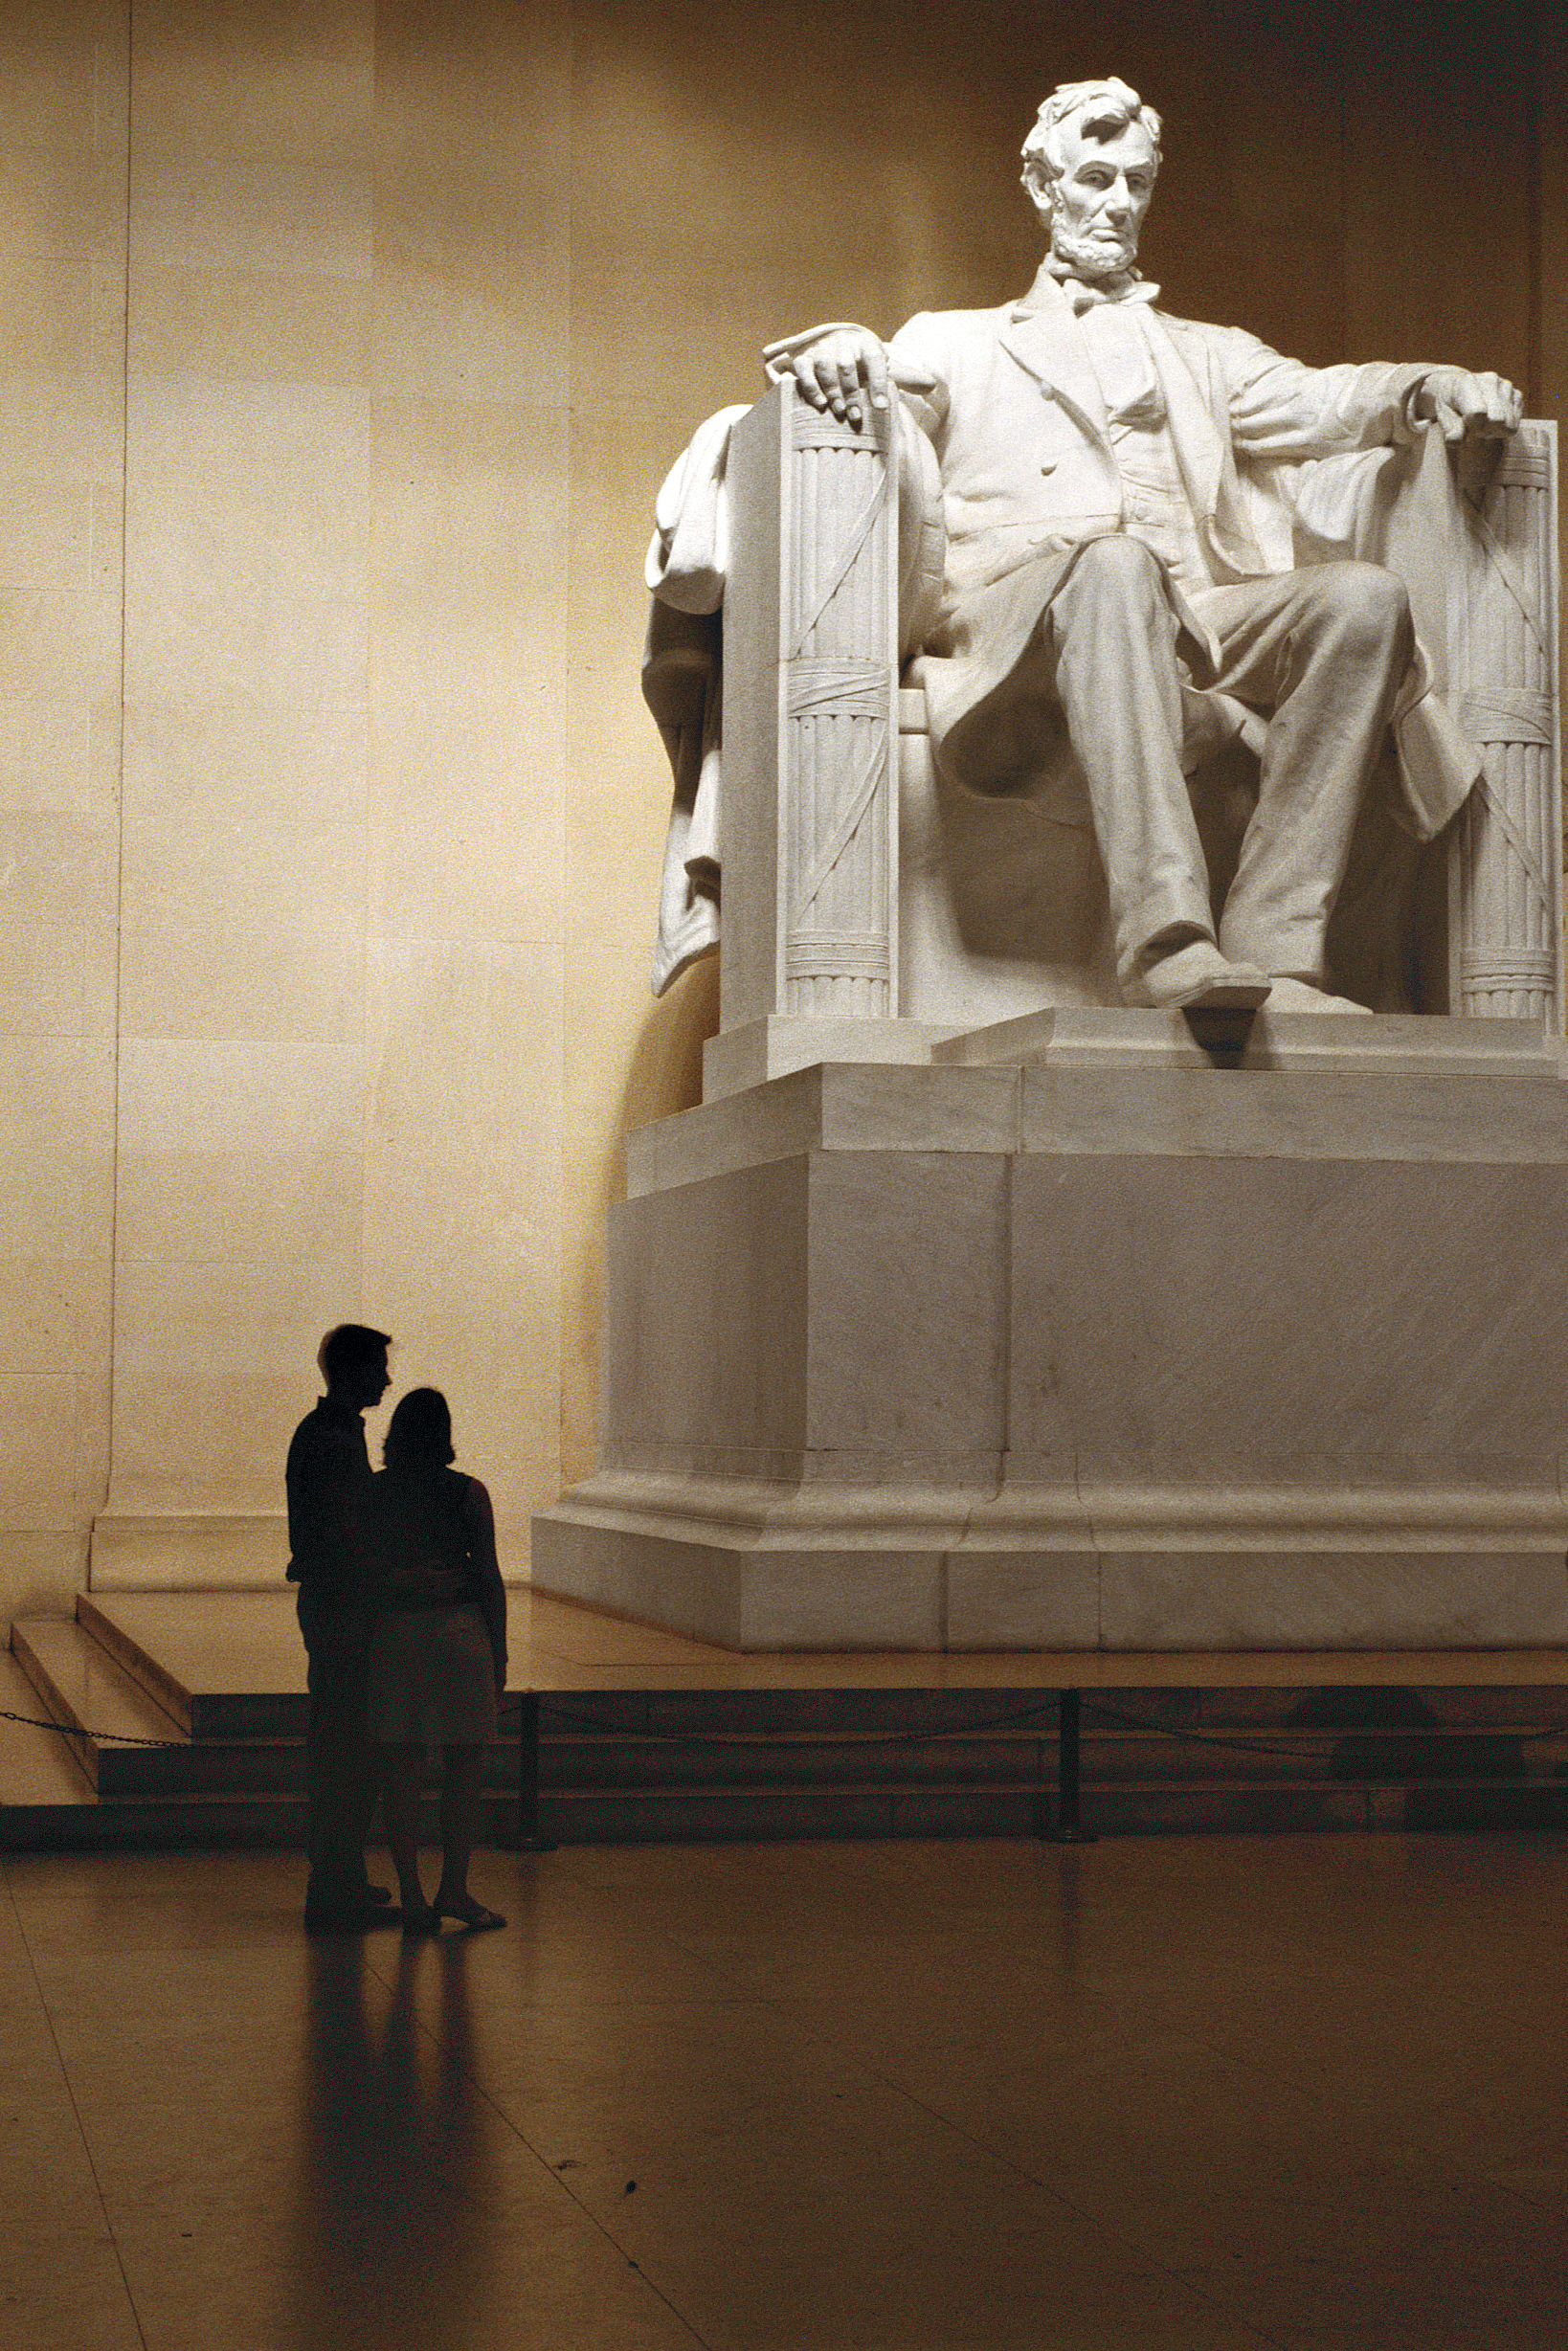 10 Best Things About Washington, D.C.